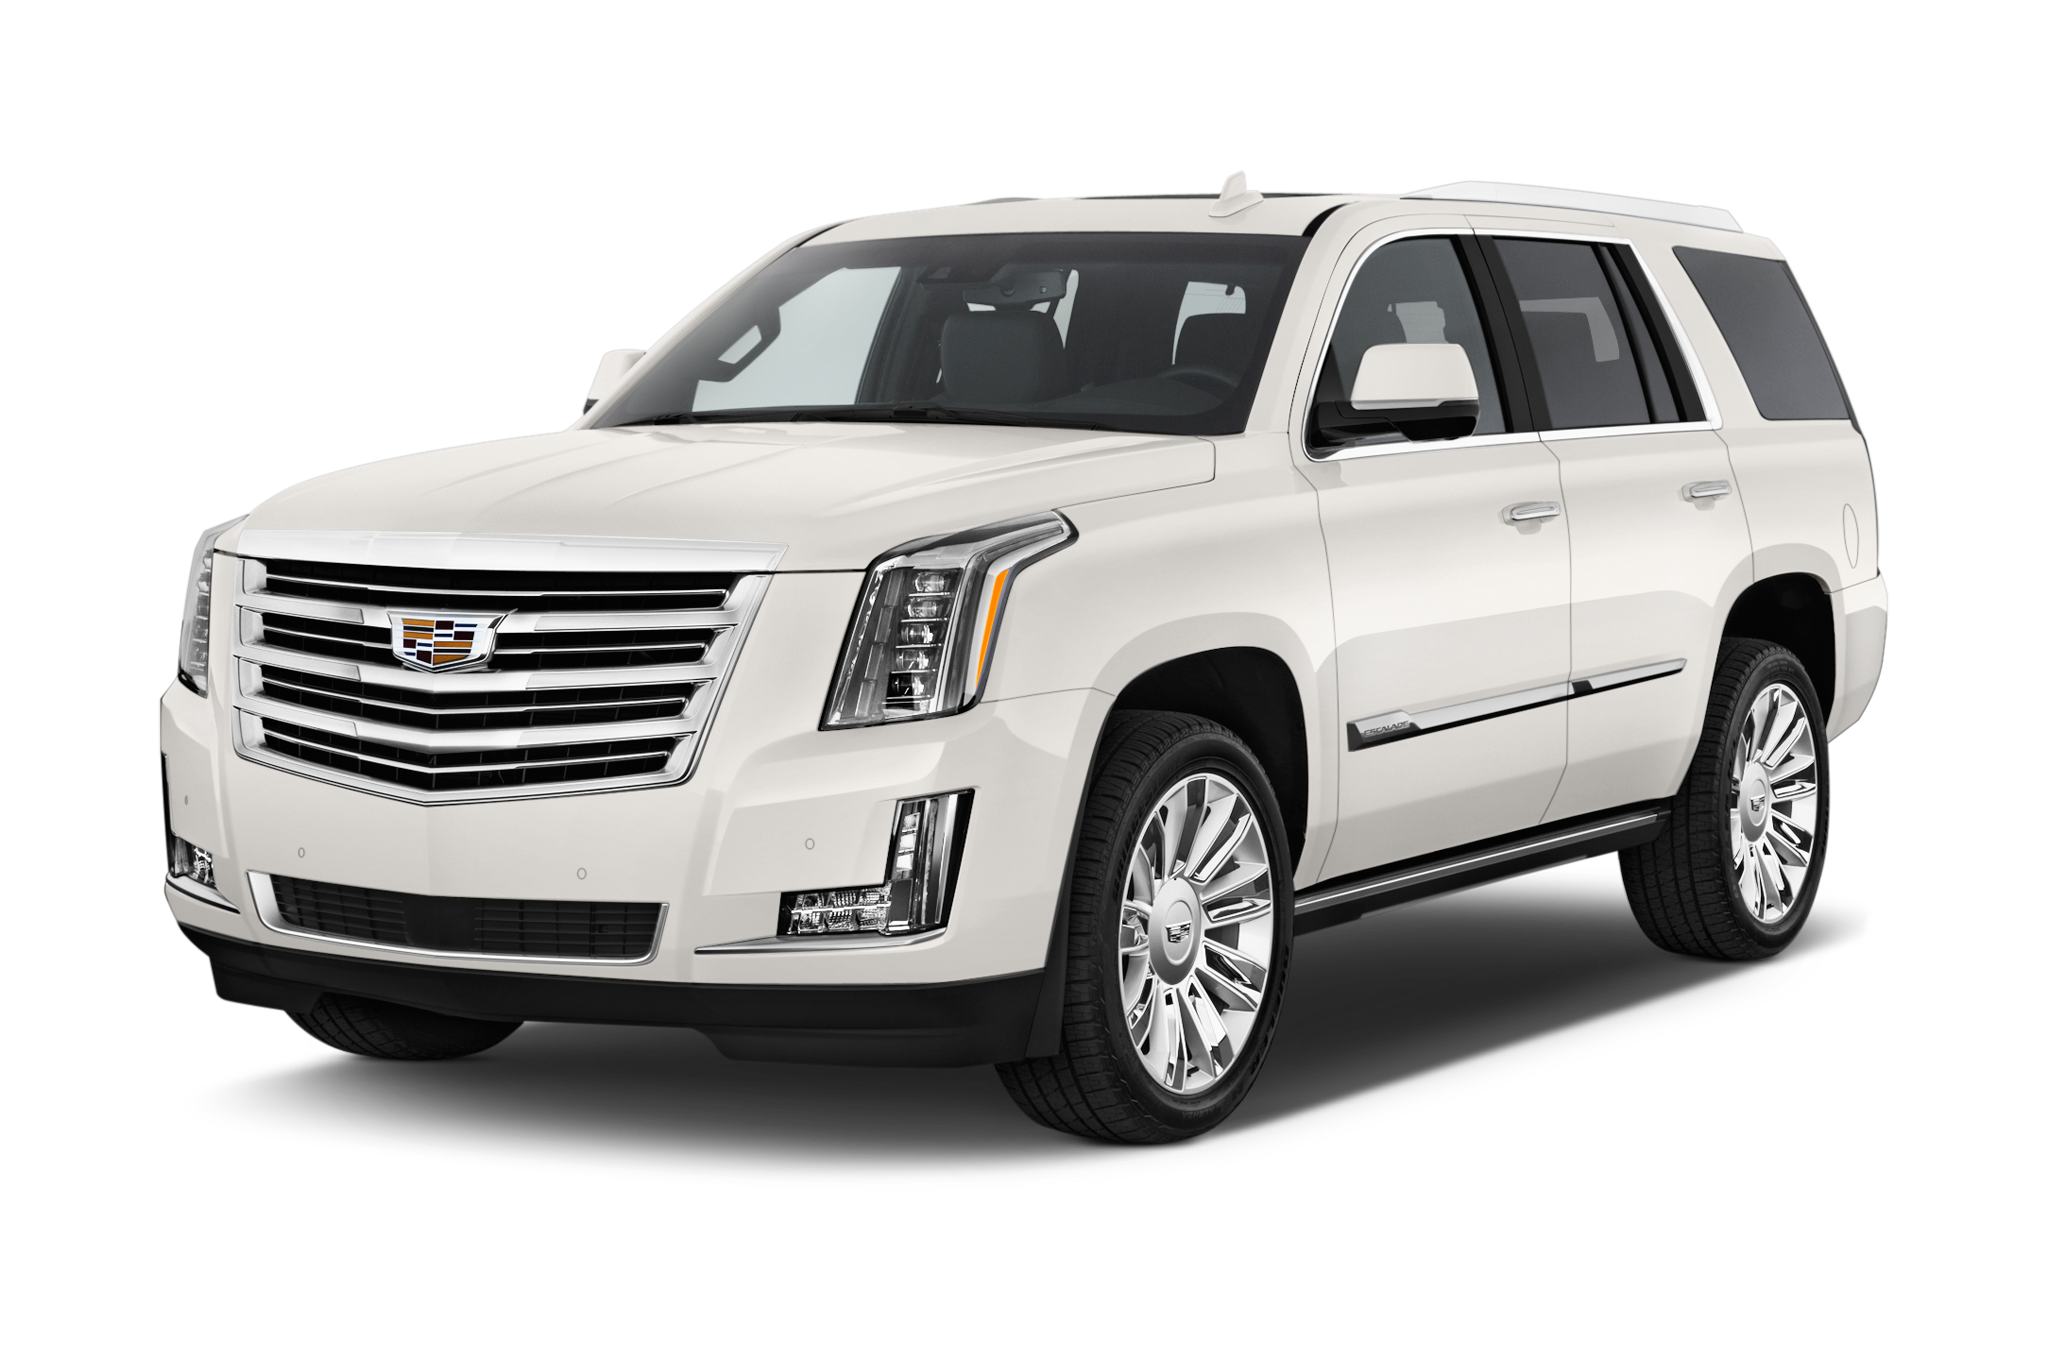 the and orlando miami price escalade lauderdale esv rent in ft luxury cadillac of suv picture